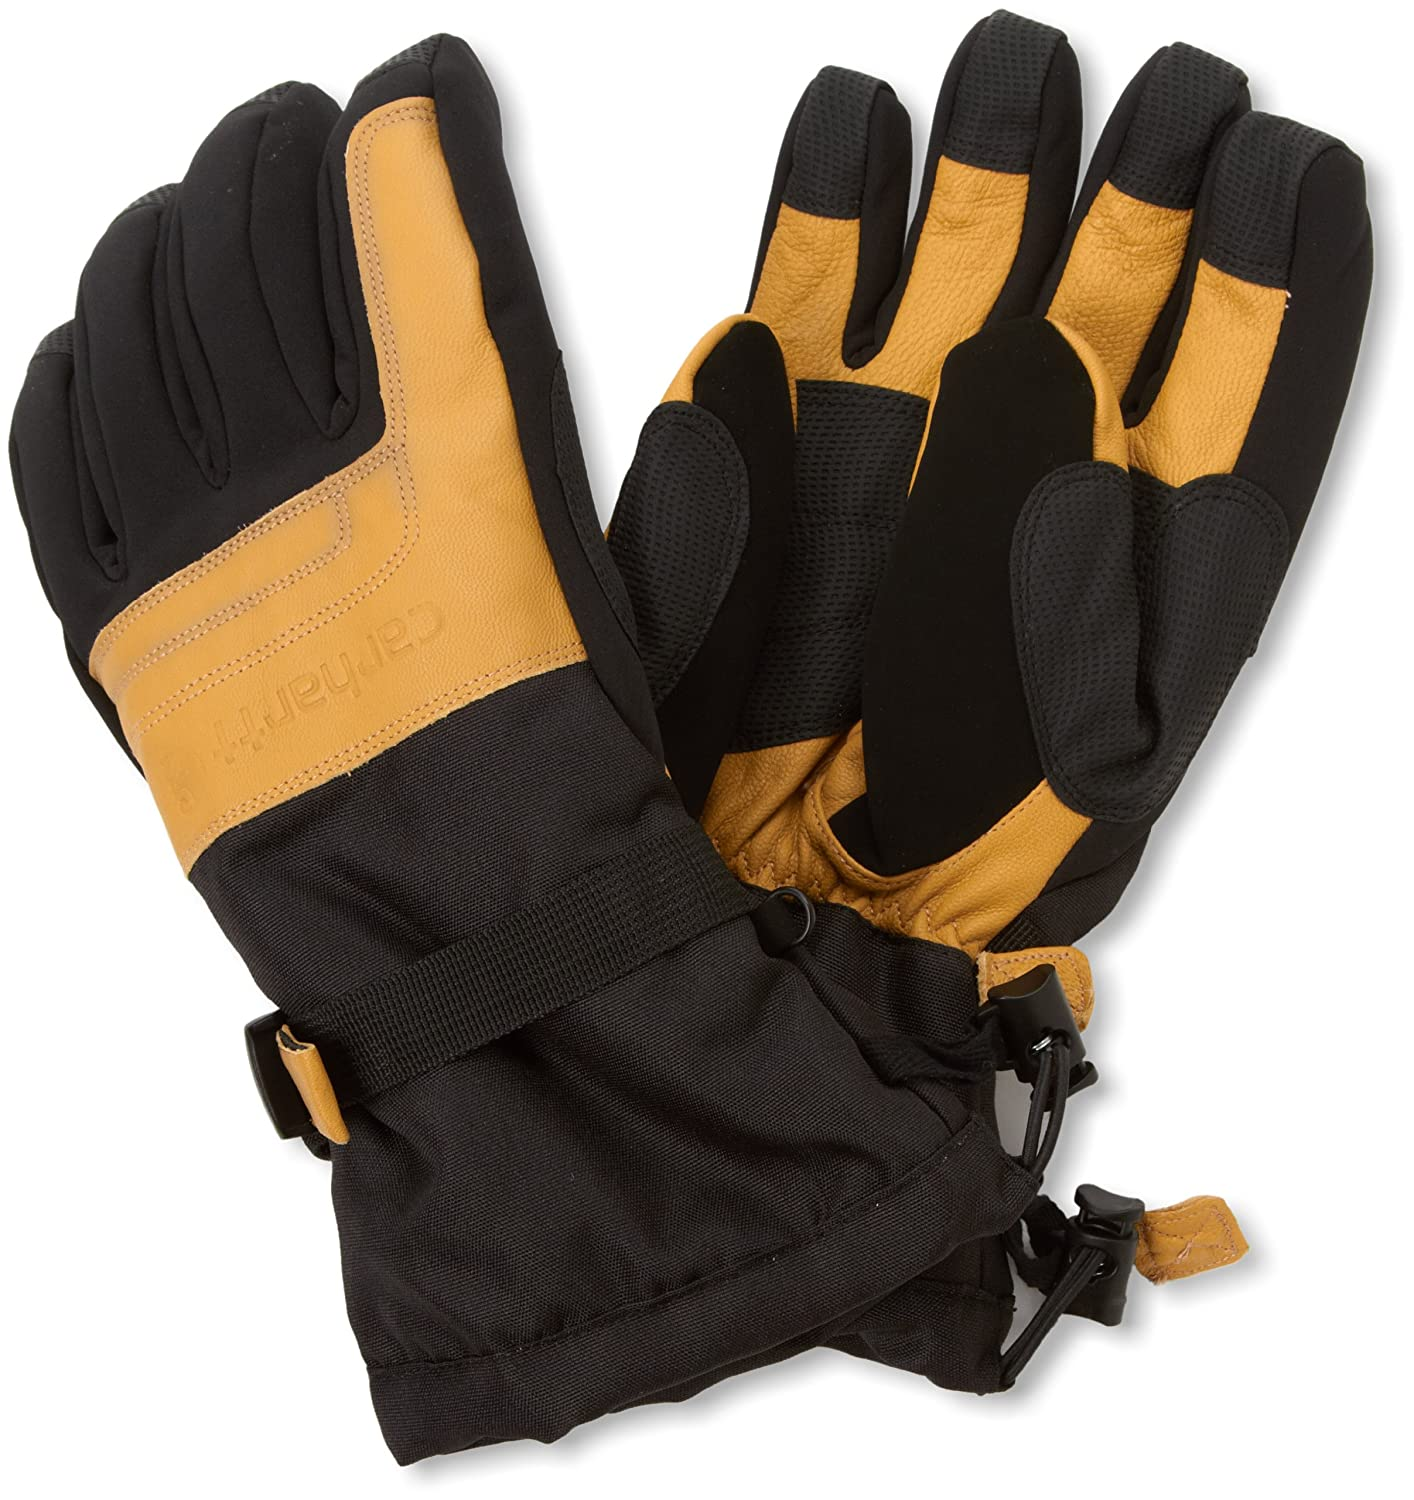 Carhartt Men's Cold Snap Insulated Work Glove, Black/Barley, Large A505